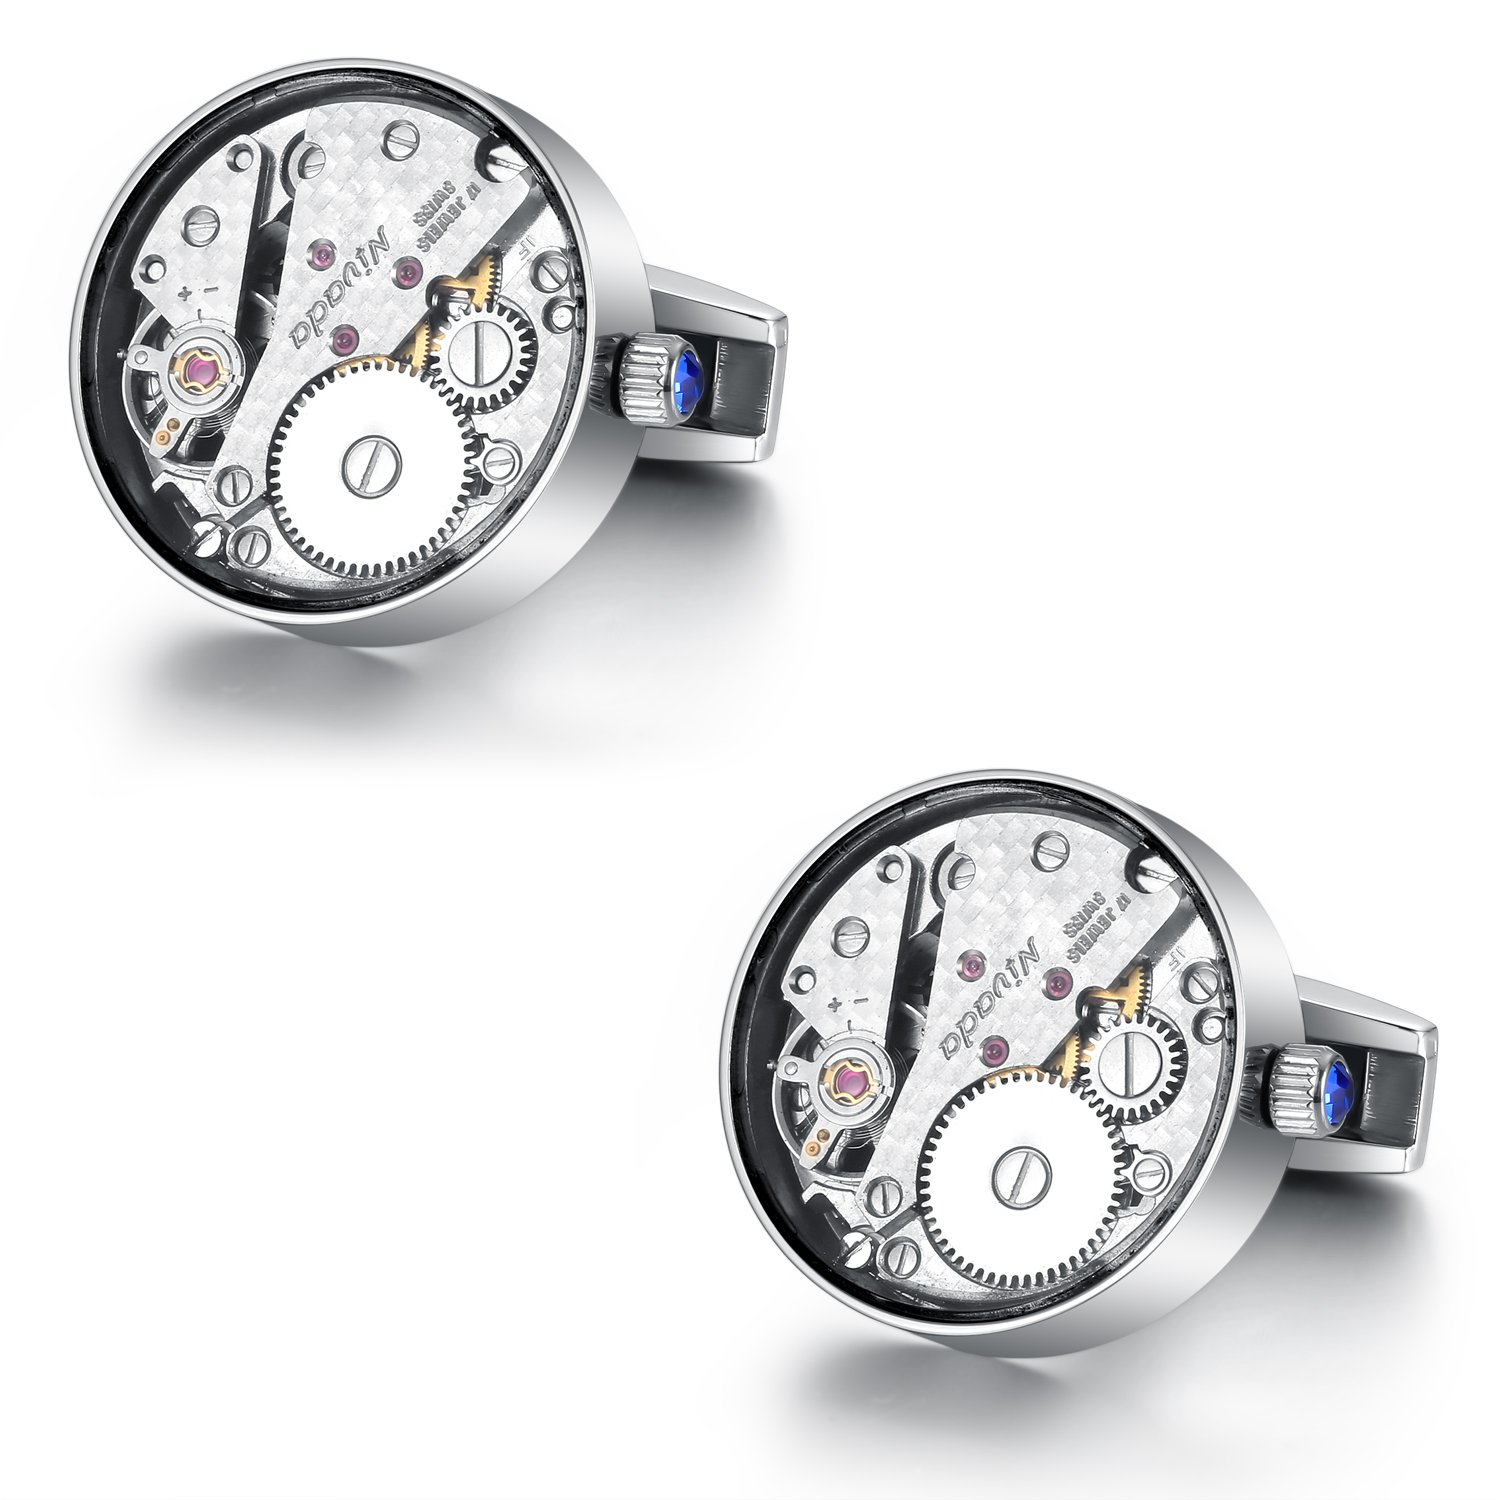 Dich Creat Men's Real Titanium Swiss Movement Cufflinks Covered with Glass/Individually numbered by Dich Creat